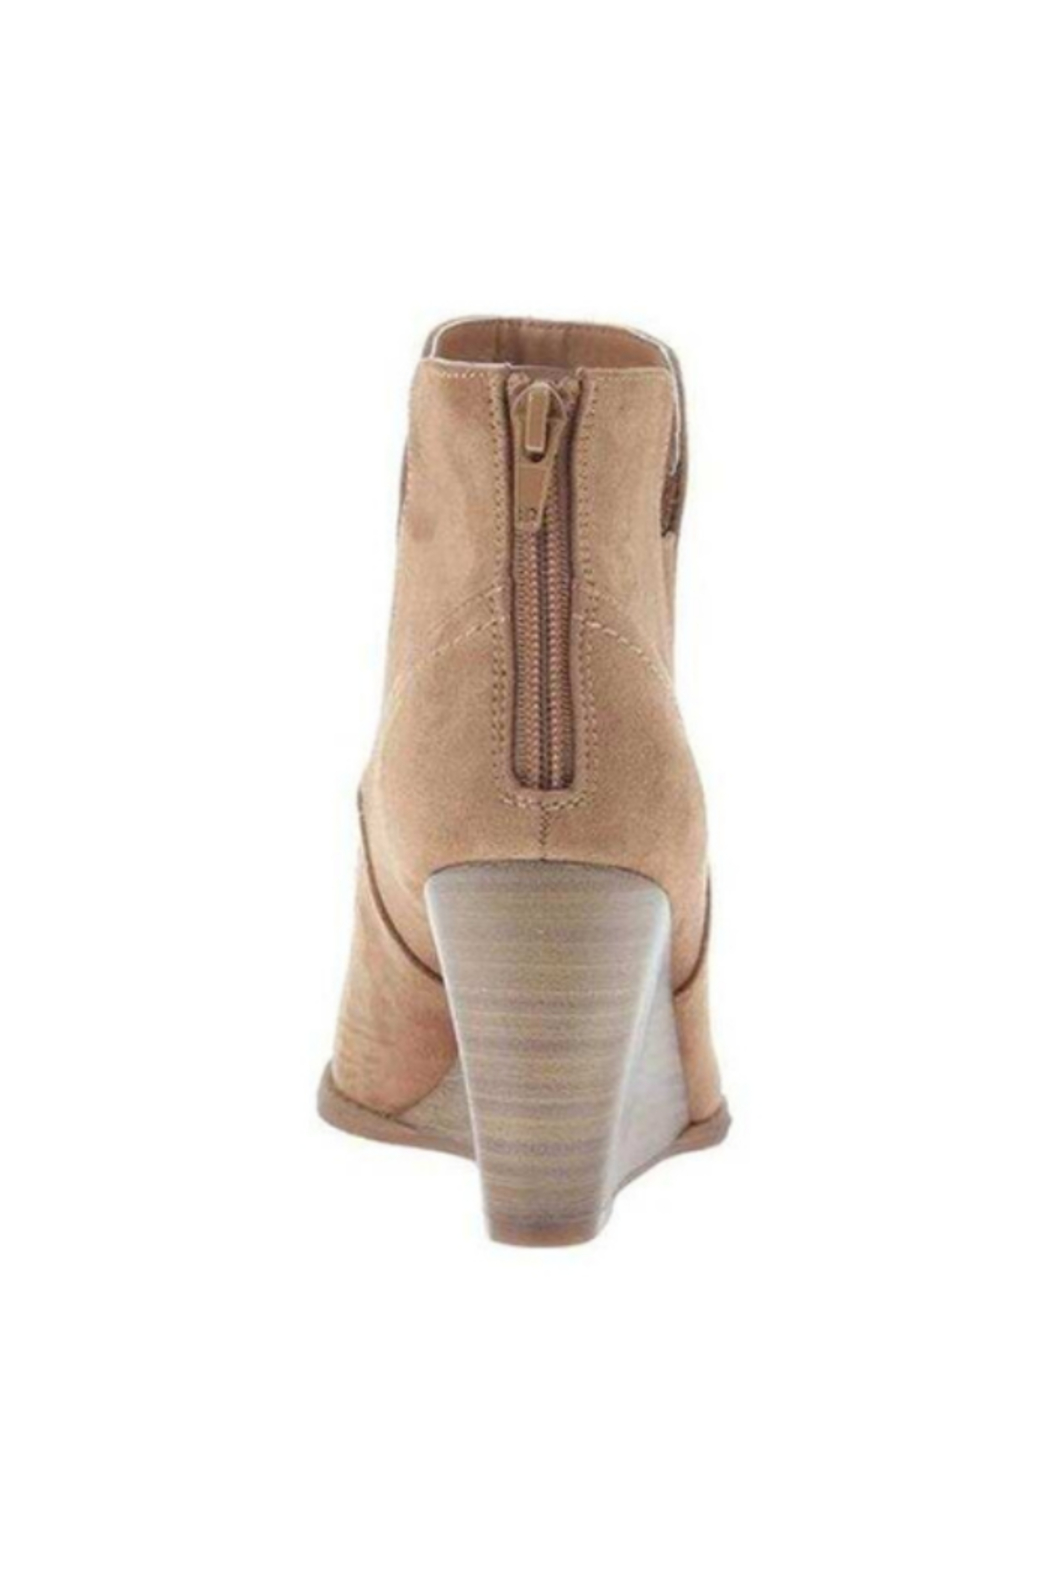 Madeline  Fantasyland Wedge Boot - New Tan - Front Full Image